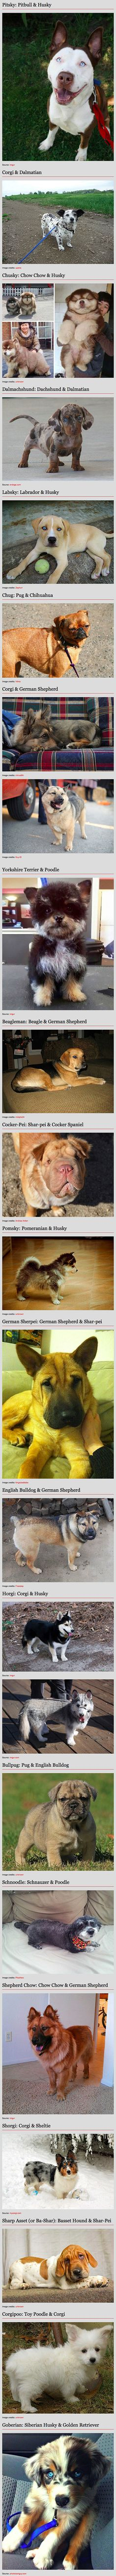 Dogs are probably one of the most diverse-looking species on the planet. Thousands of years of breeding has created a wide range of distinctive breeds with drastically different colors, coats, sizes and shapes. But what happens when you take some of these distinctive breeds and combine their most notable properties? You get dogs like these adorable cuties, who combine the best of both of their breeds.